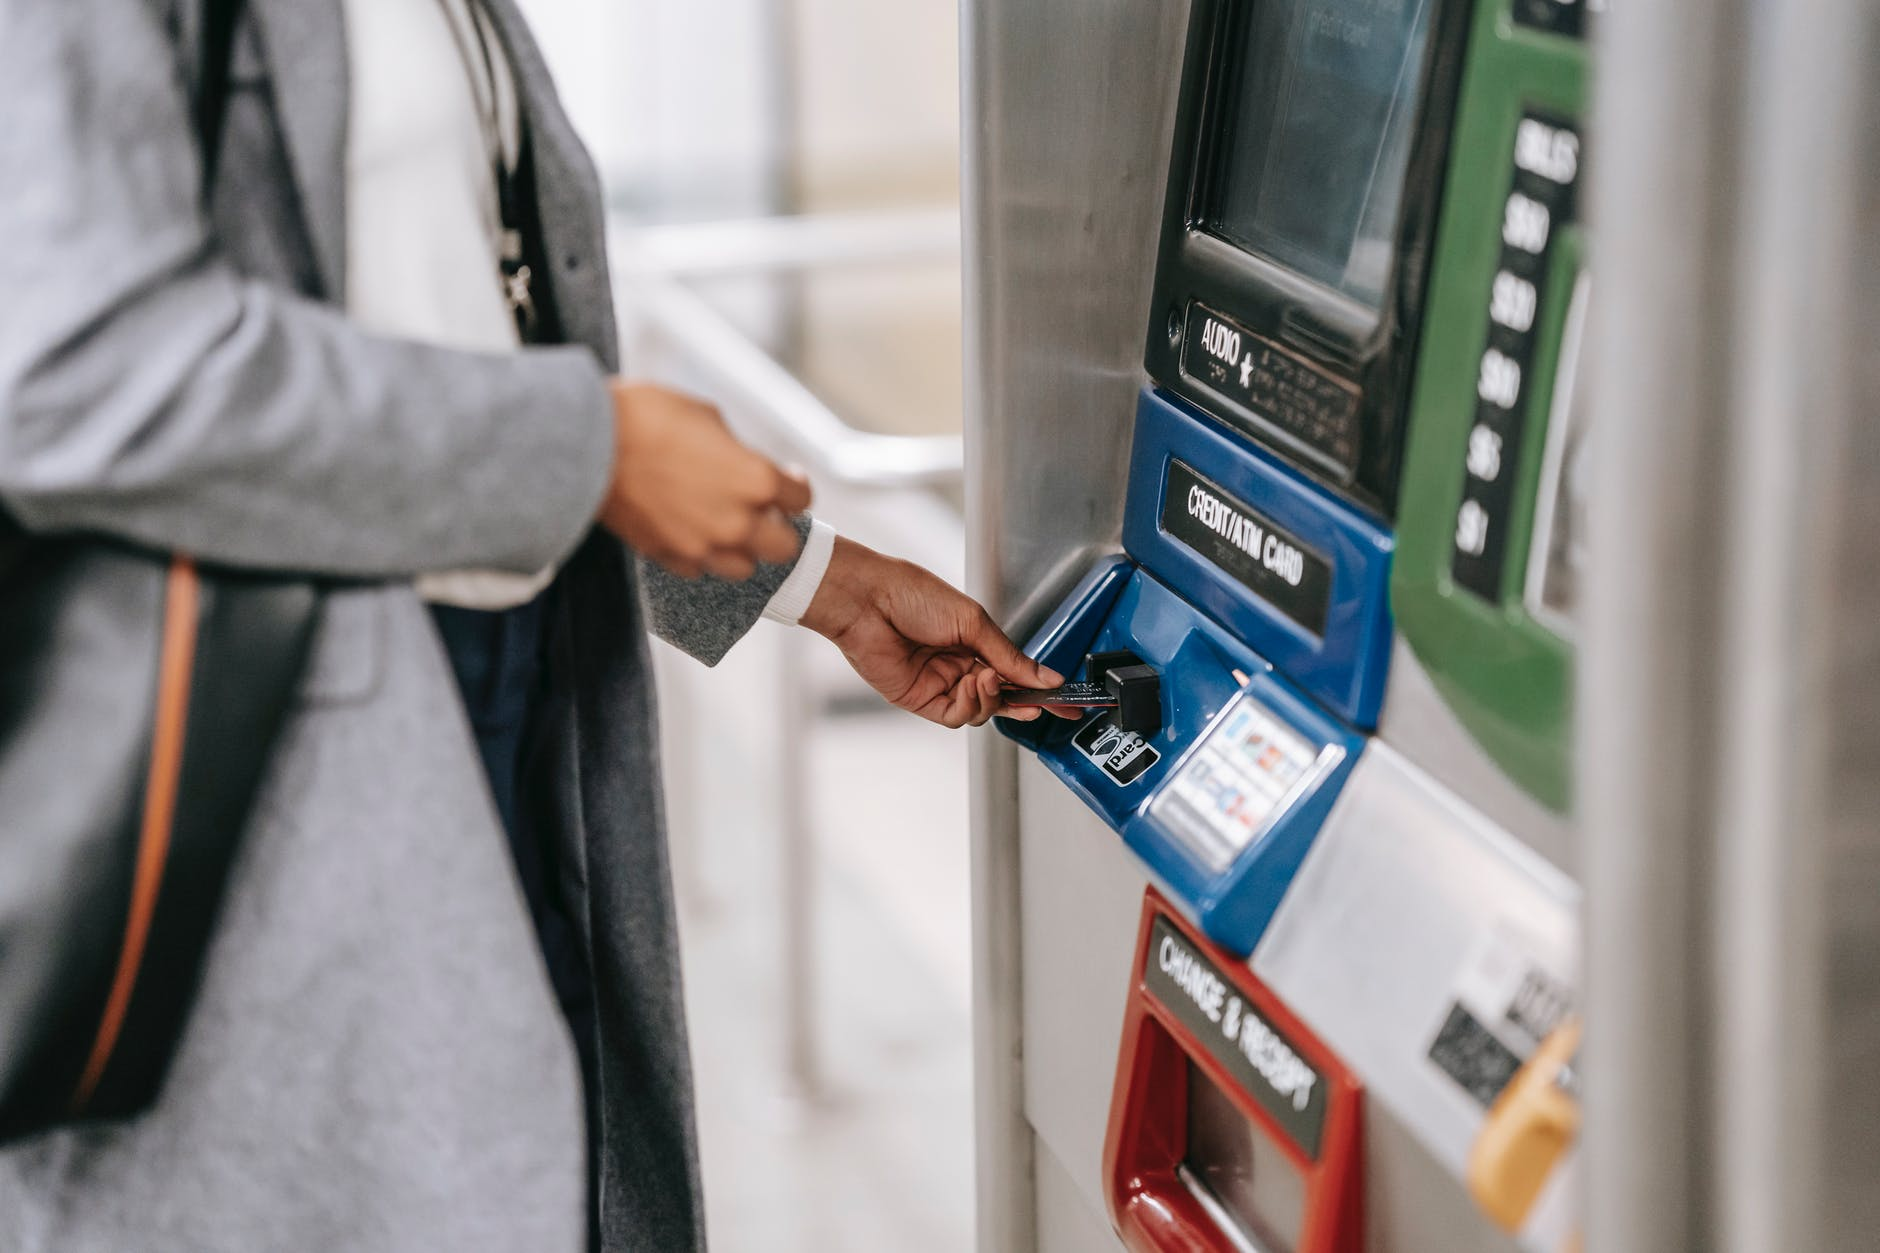 faceless woman inserting credit card into subway ticket machine